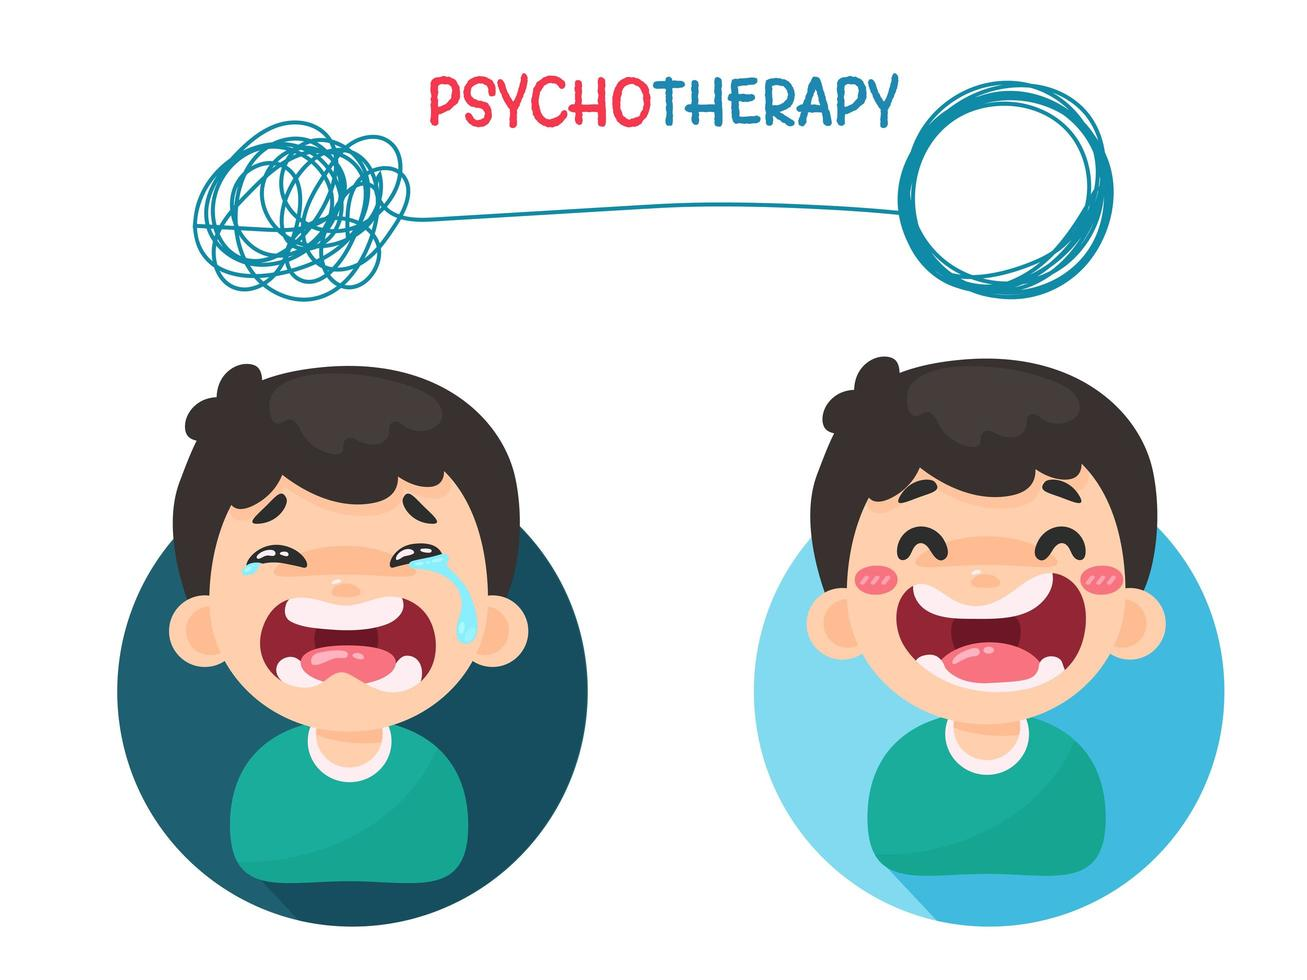 Psychotherapy thoughts with mood swings vector